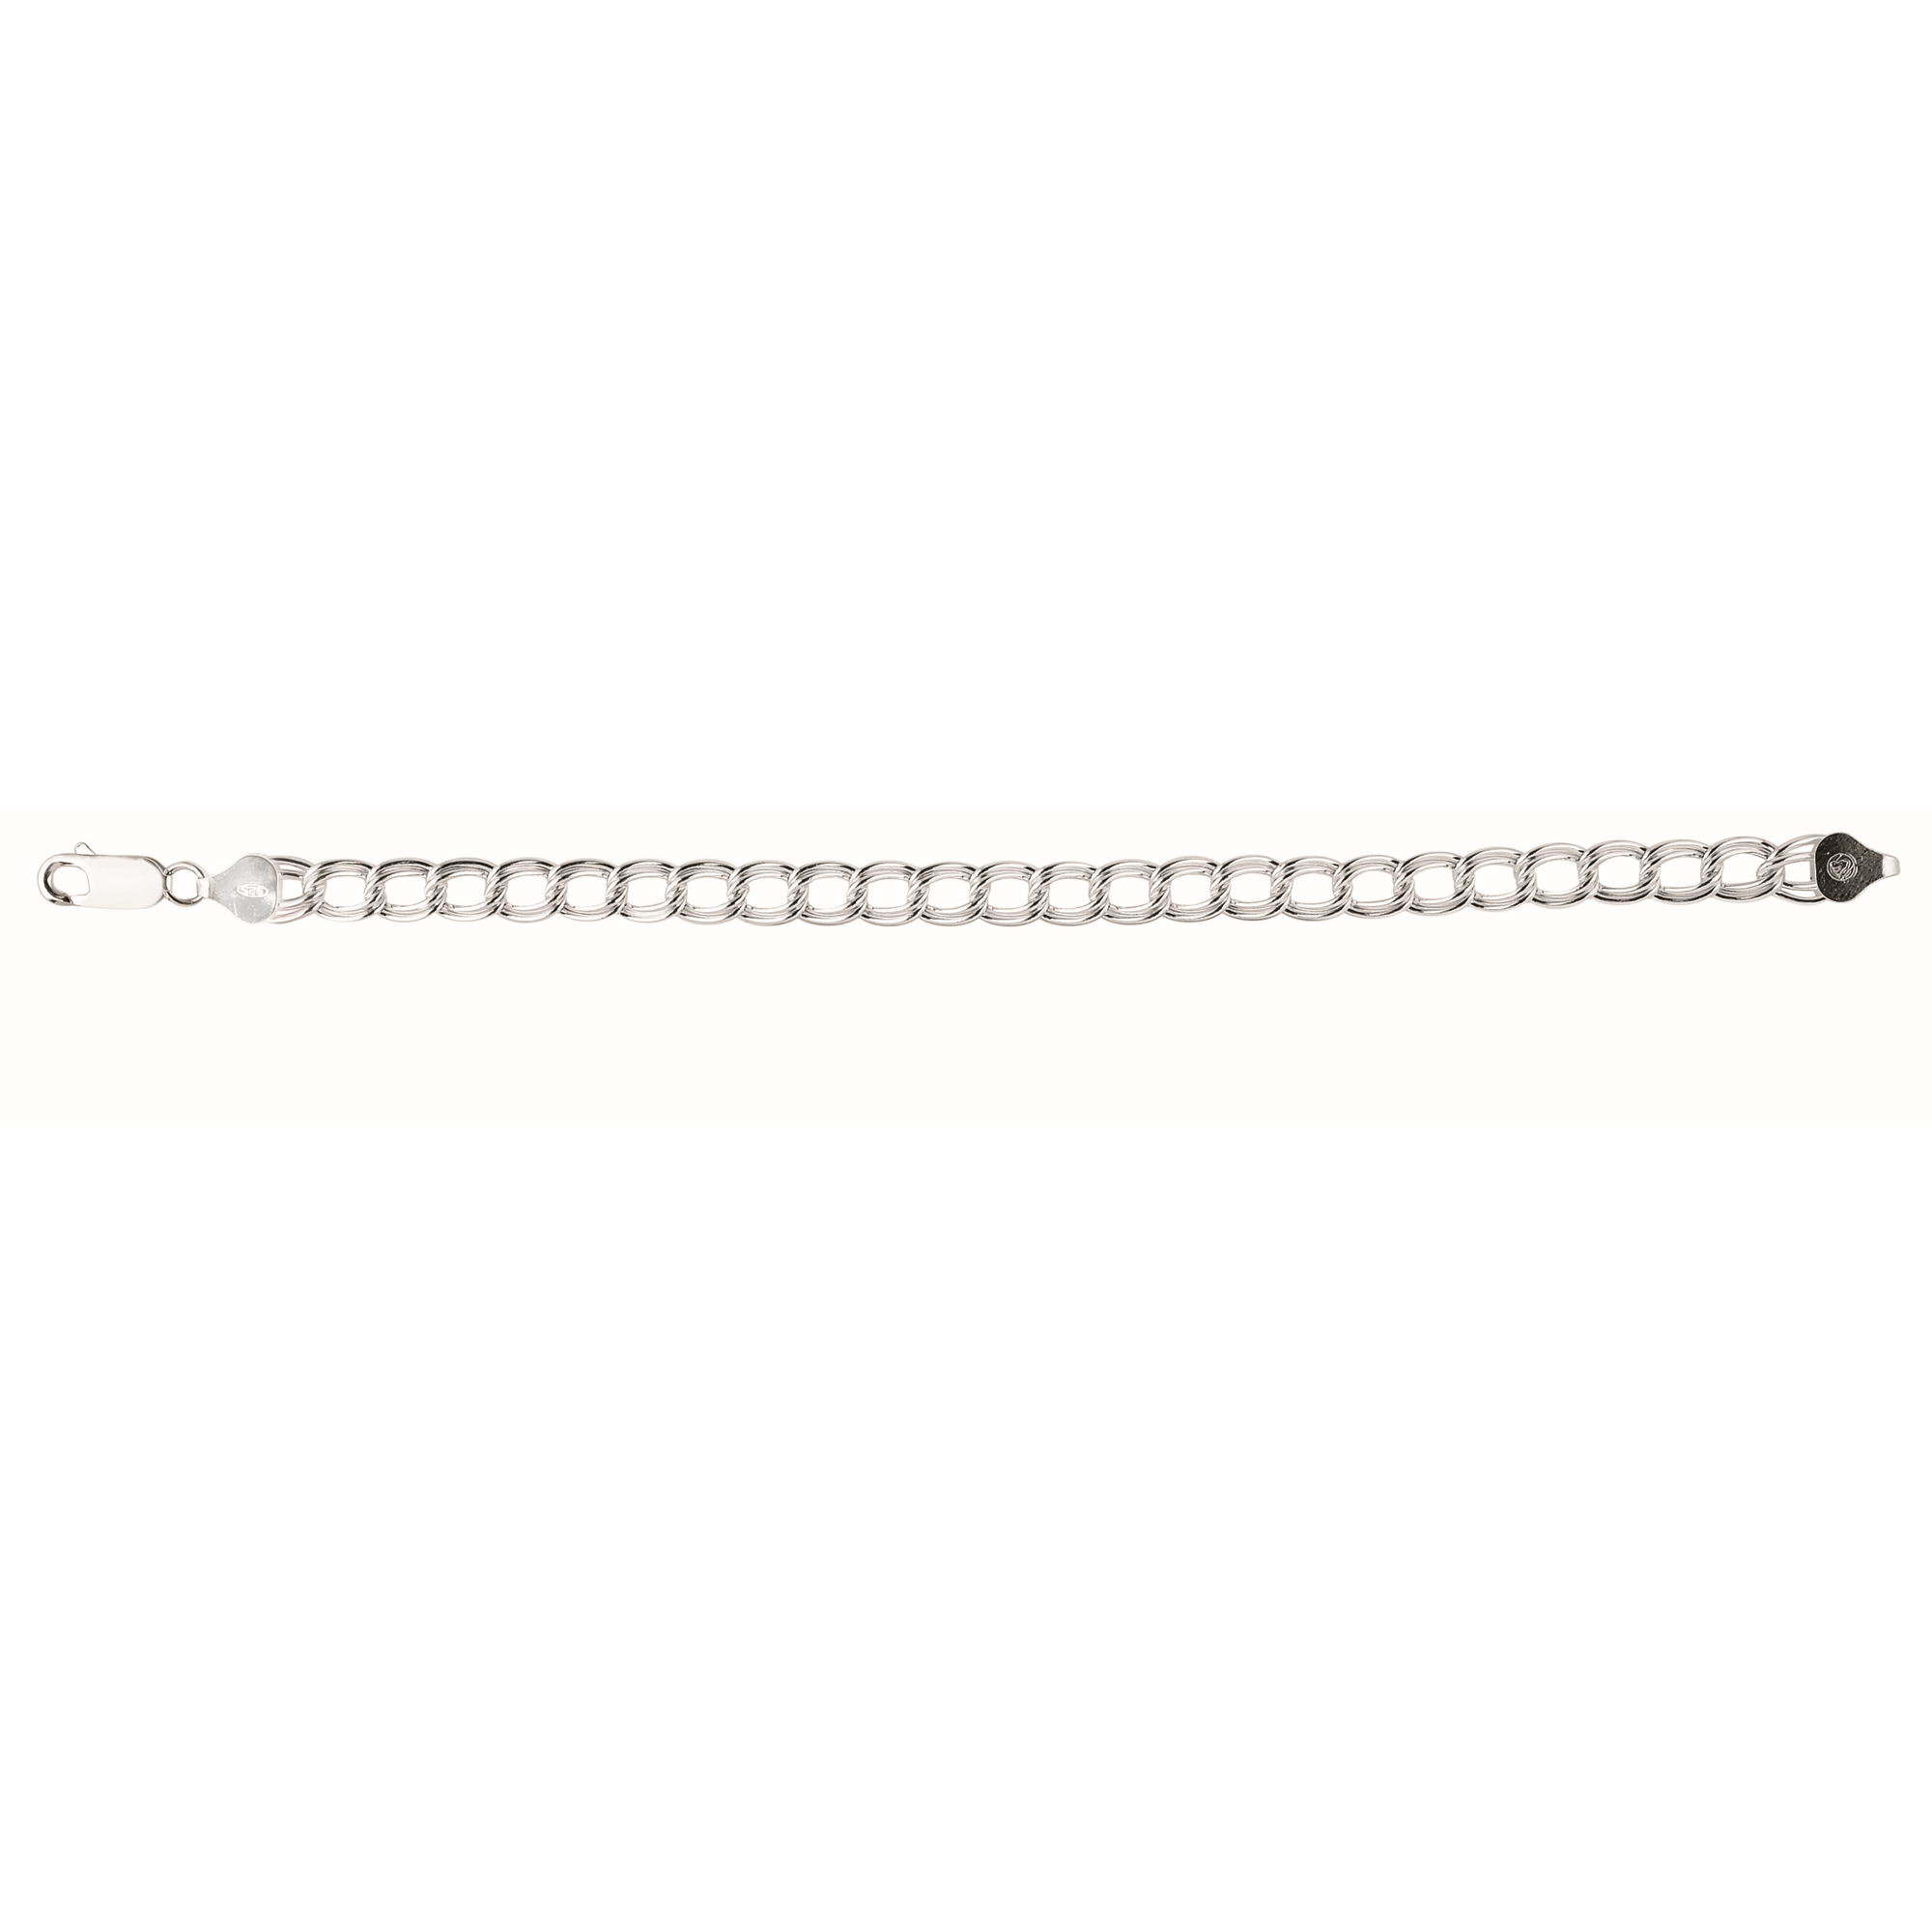 Silver 8 inches with Rhodium Finish 6.6mm Shiny Double Link Chain Bracelet with Lobster Clasp